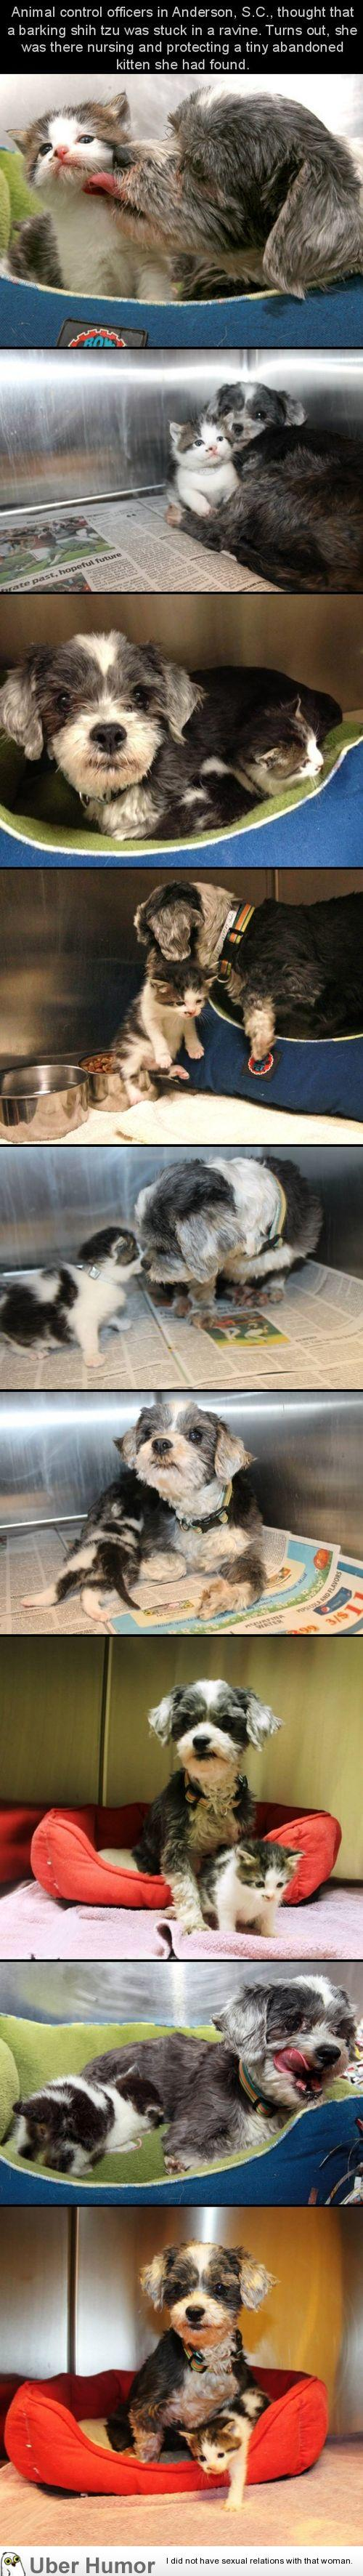 Dog finds a tiny kitten, risks everything to save her. | uberHumor.com